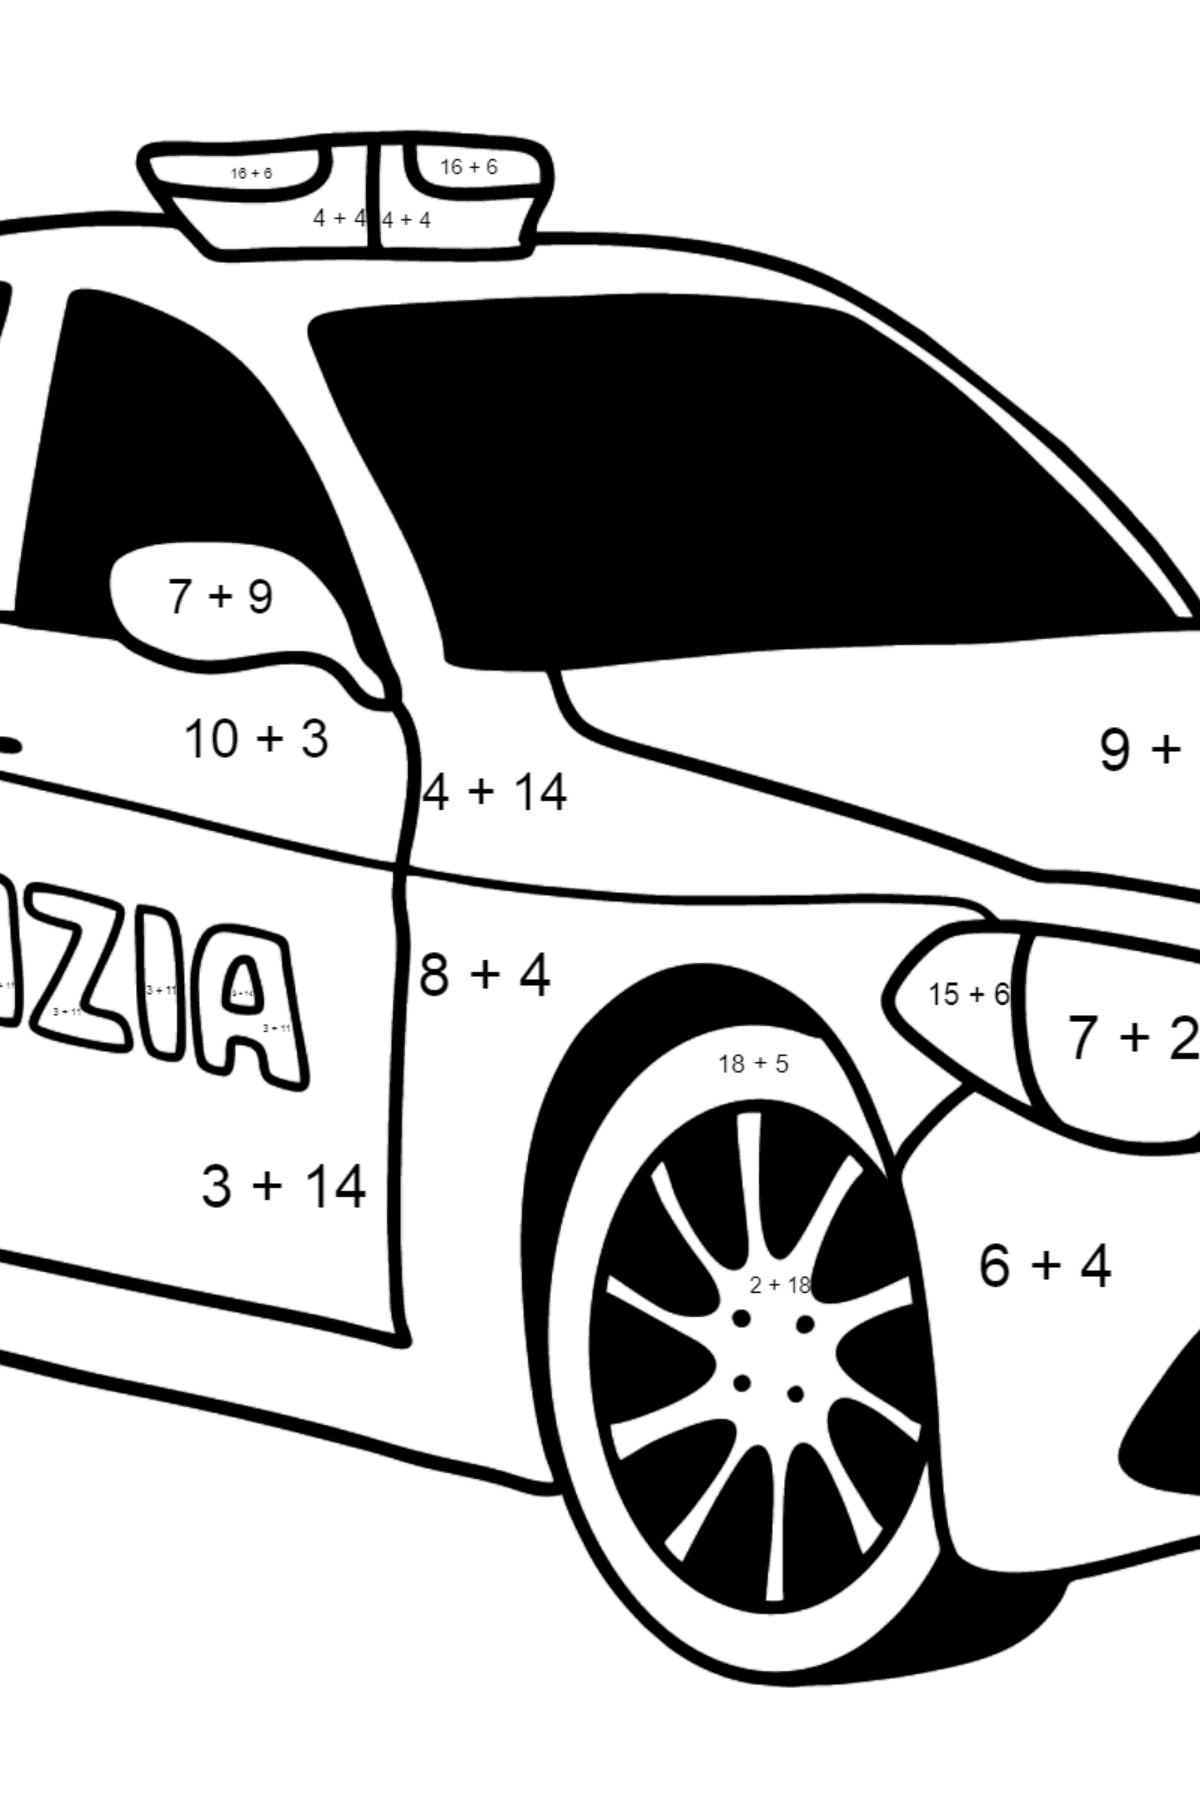 Police Car in Italy coloring page - Math Coloring - Addition for Kids